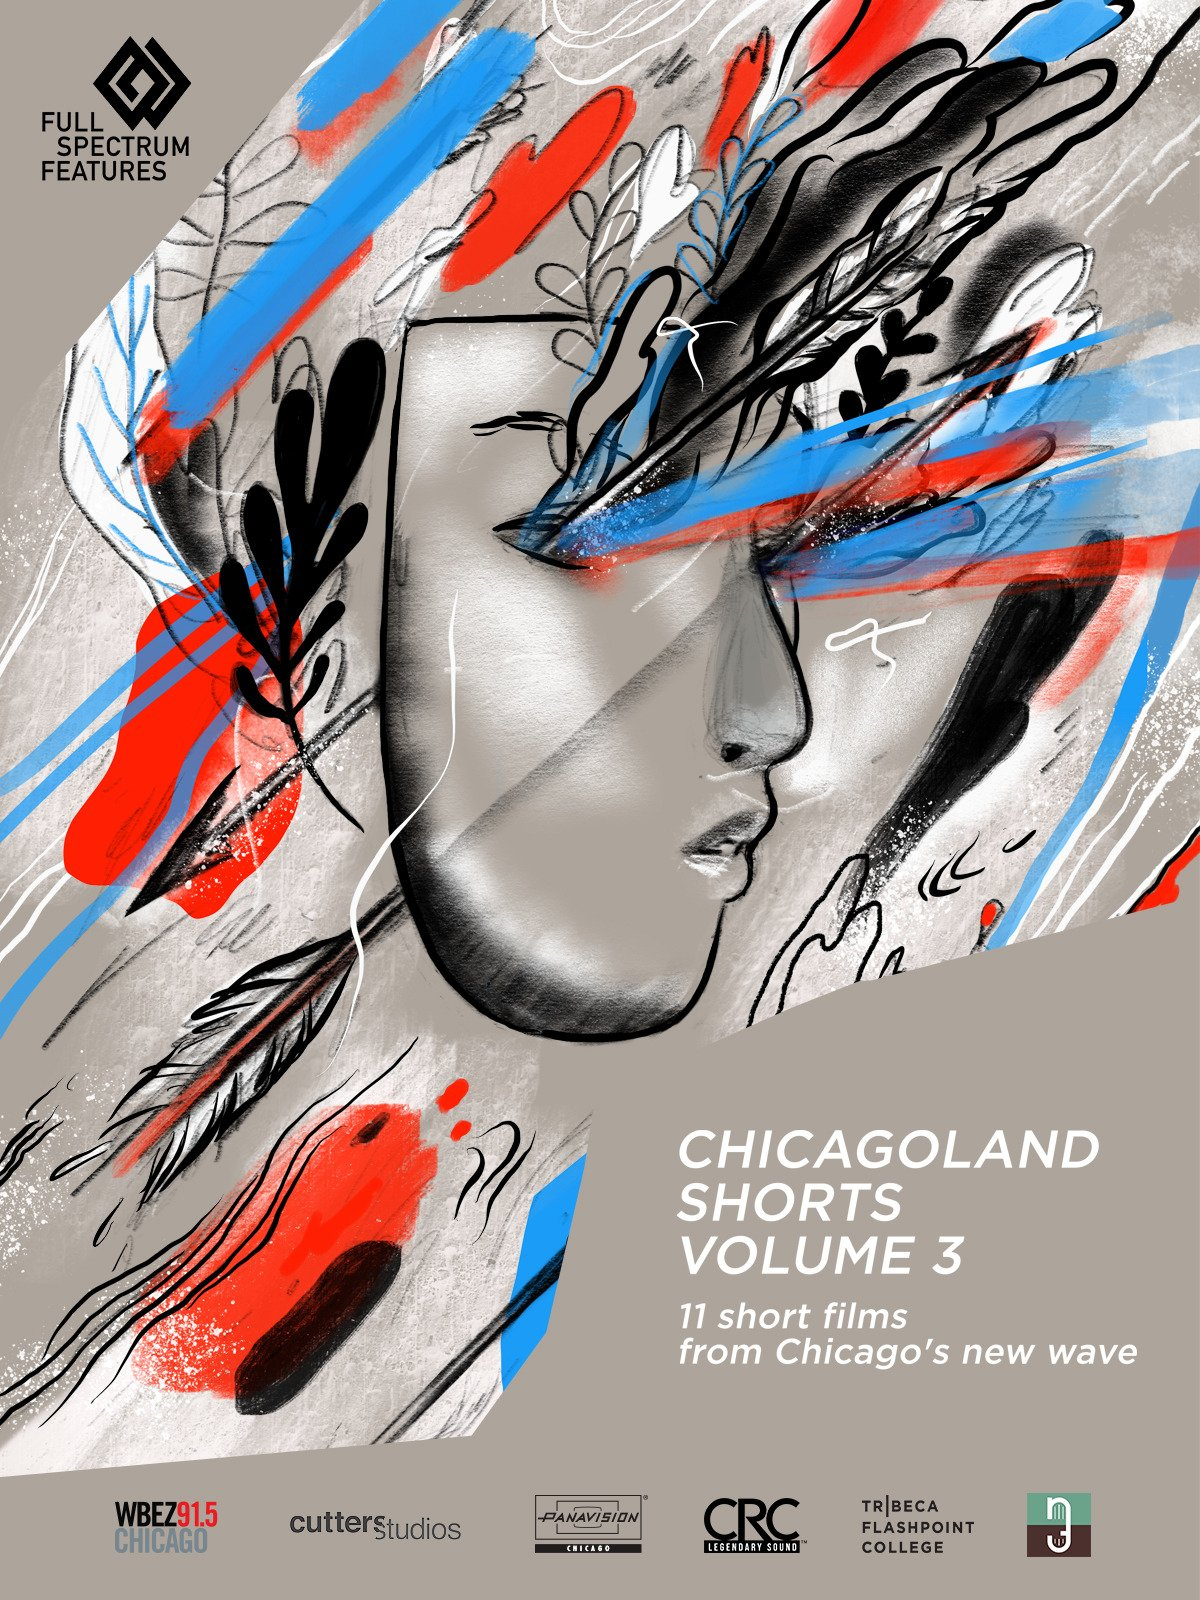 Chicagoland Shorts Vol. 3